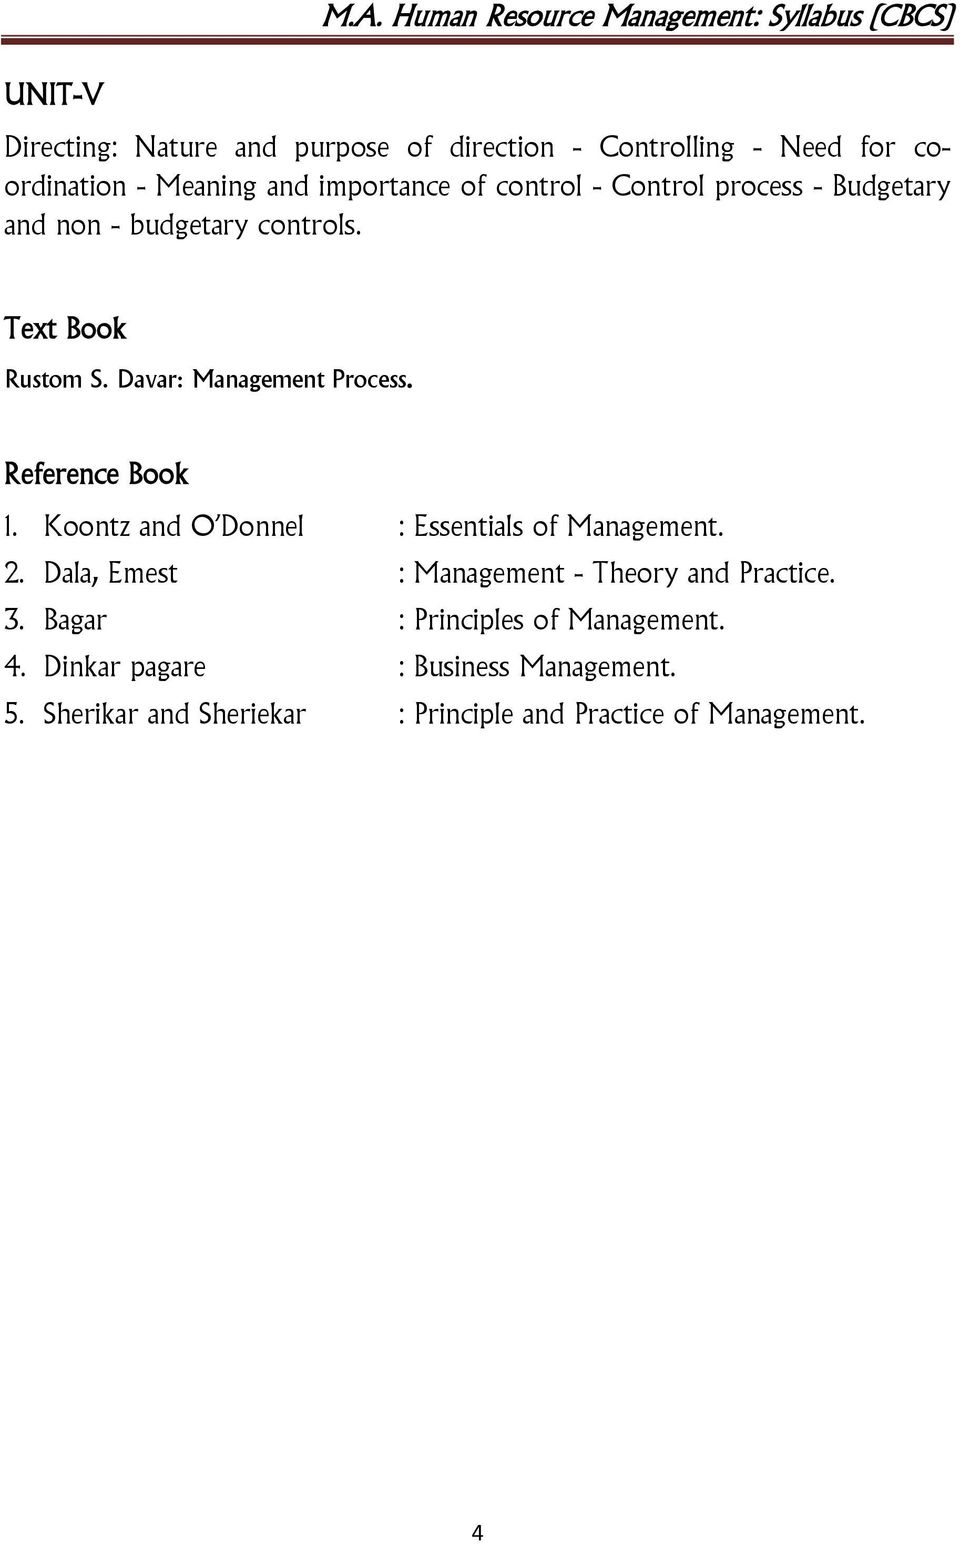 Reference Book 1. Koontz and O Donnel : Essentials of Management. 2. Dala, Emest : Management - Theory and Practice. 3.